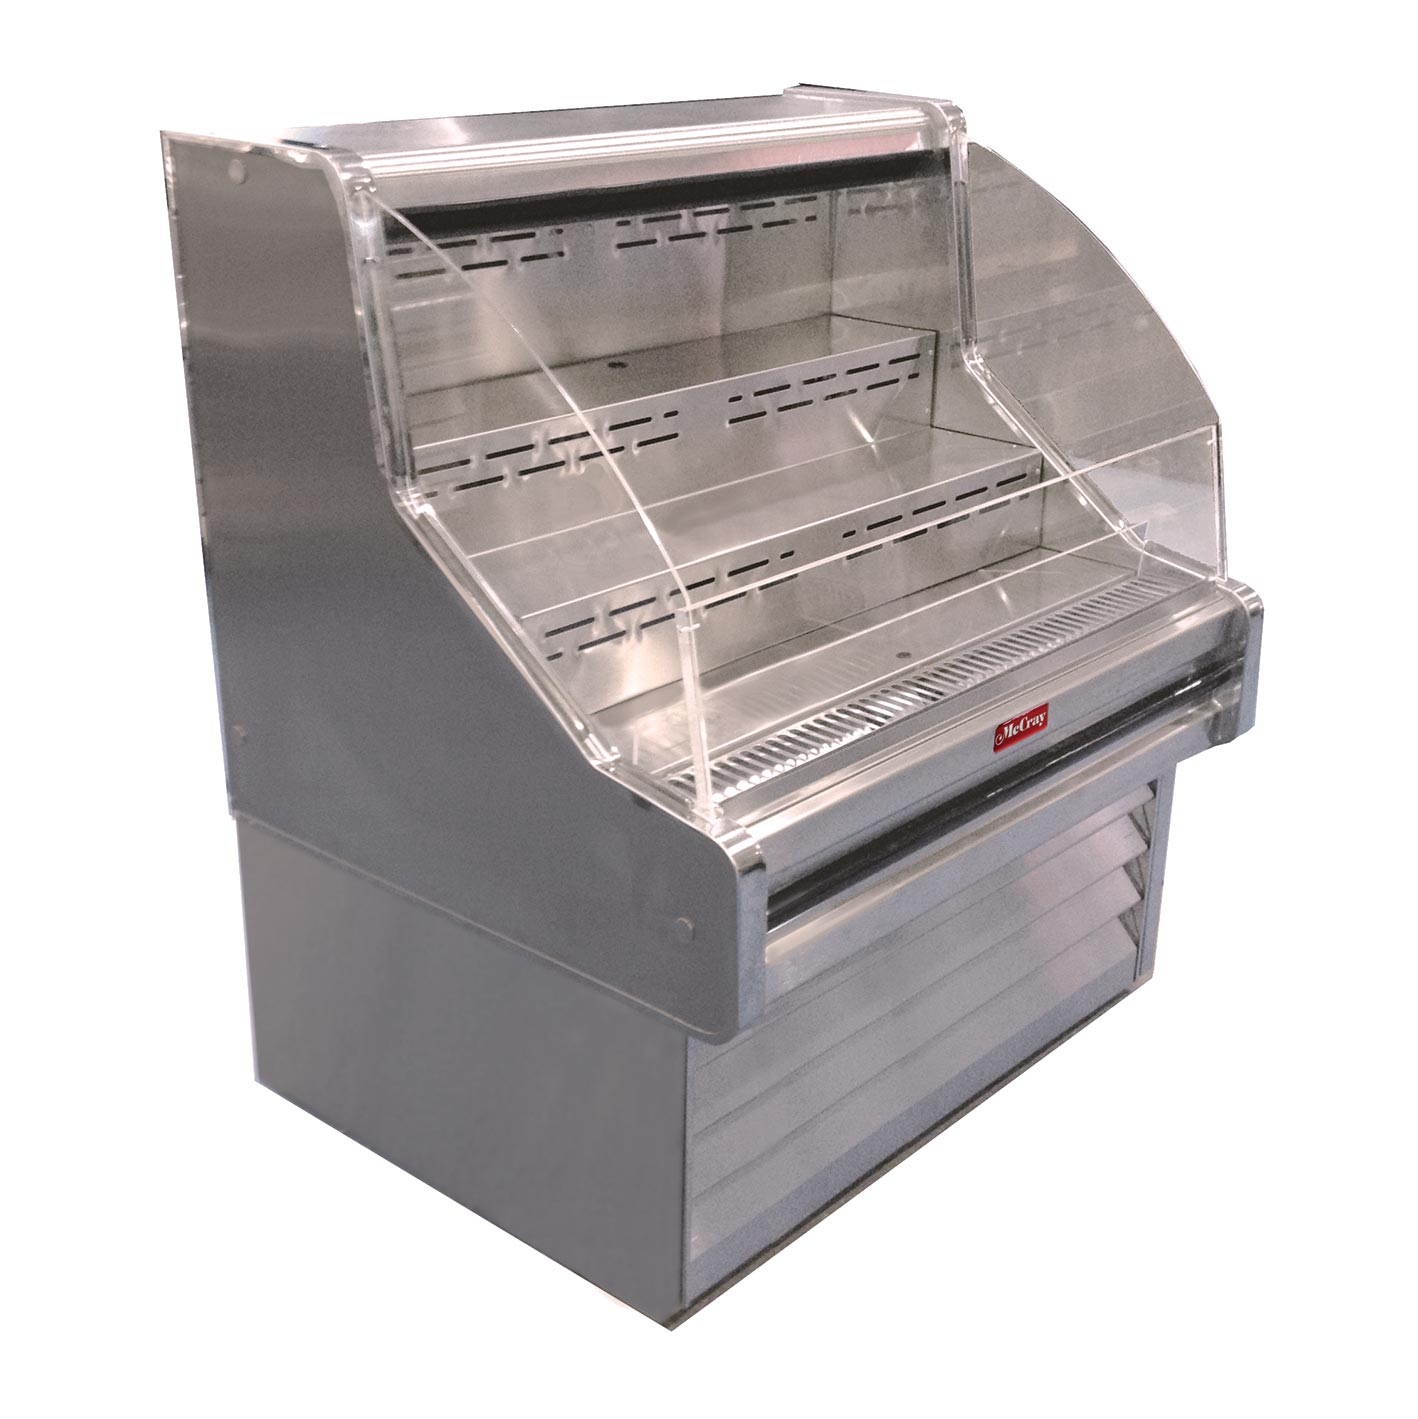 Howard-McCray R-OS35E-4C-S merchandiser, open refrigerated display